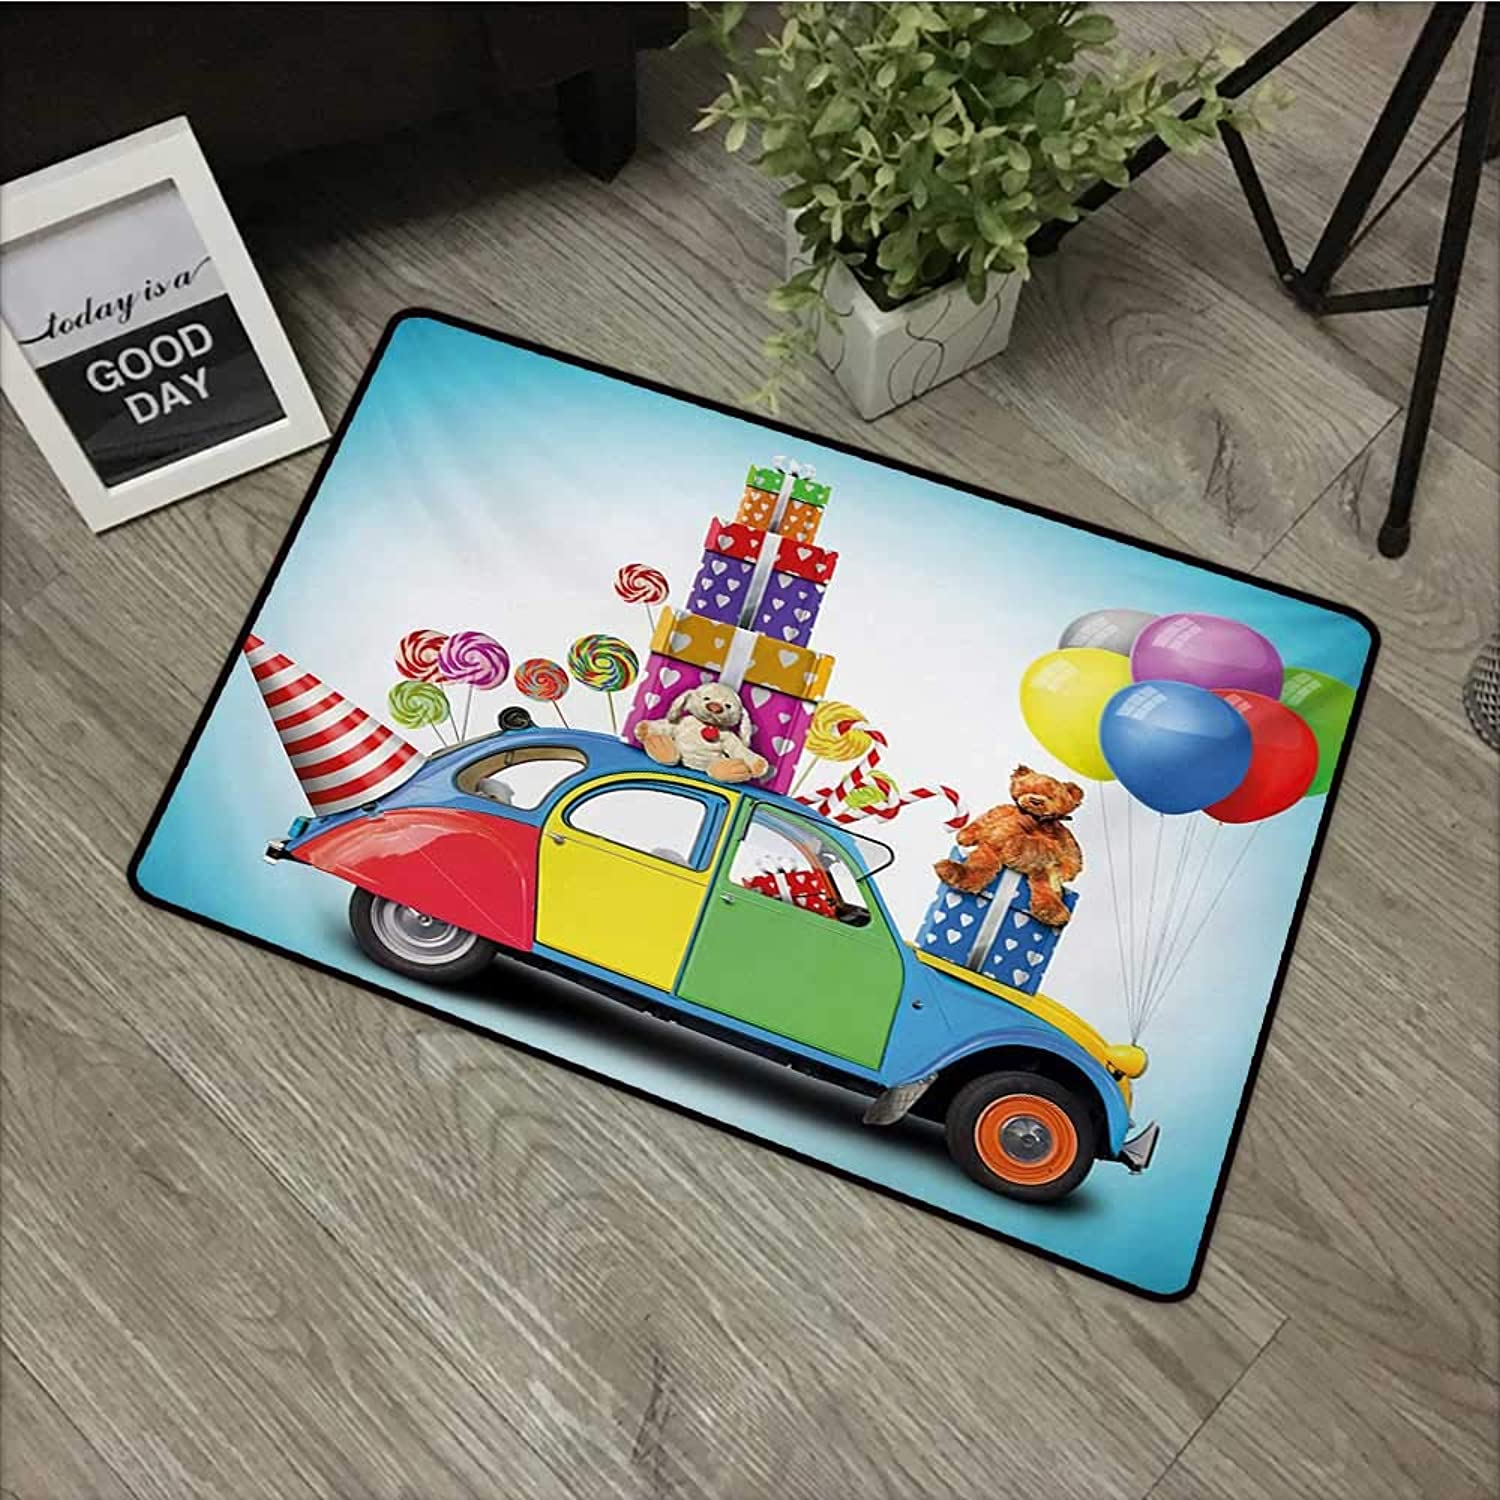 Pool Anti-Slip Door mat W35 x L59 INCH Birthday,colorful Car with Presents Toys Holiday Lollipops Party Hat Balloons Celebration,Multicolor Non-Slip, with Non-Slip Backing,Non-Slip Door Mat Carpet